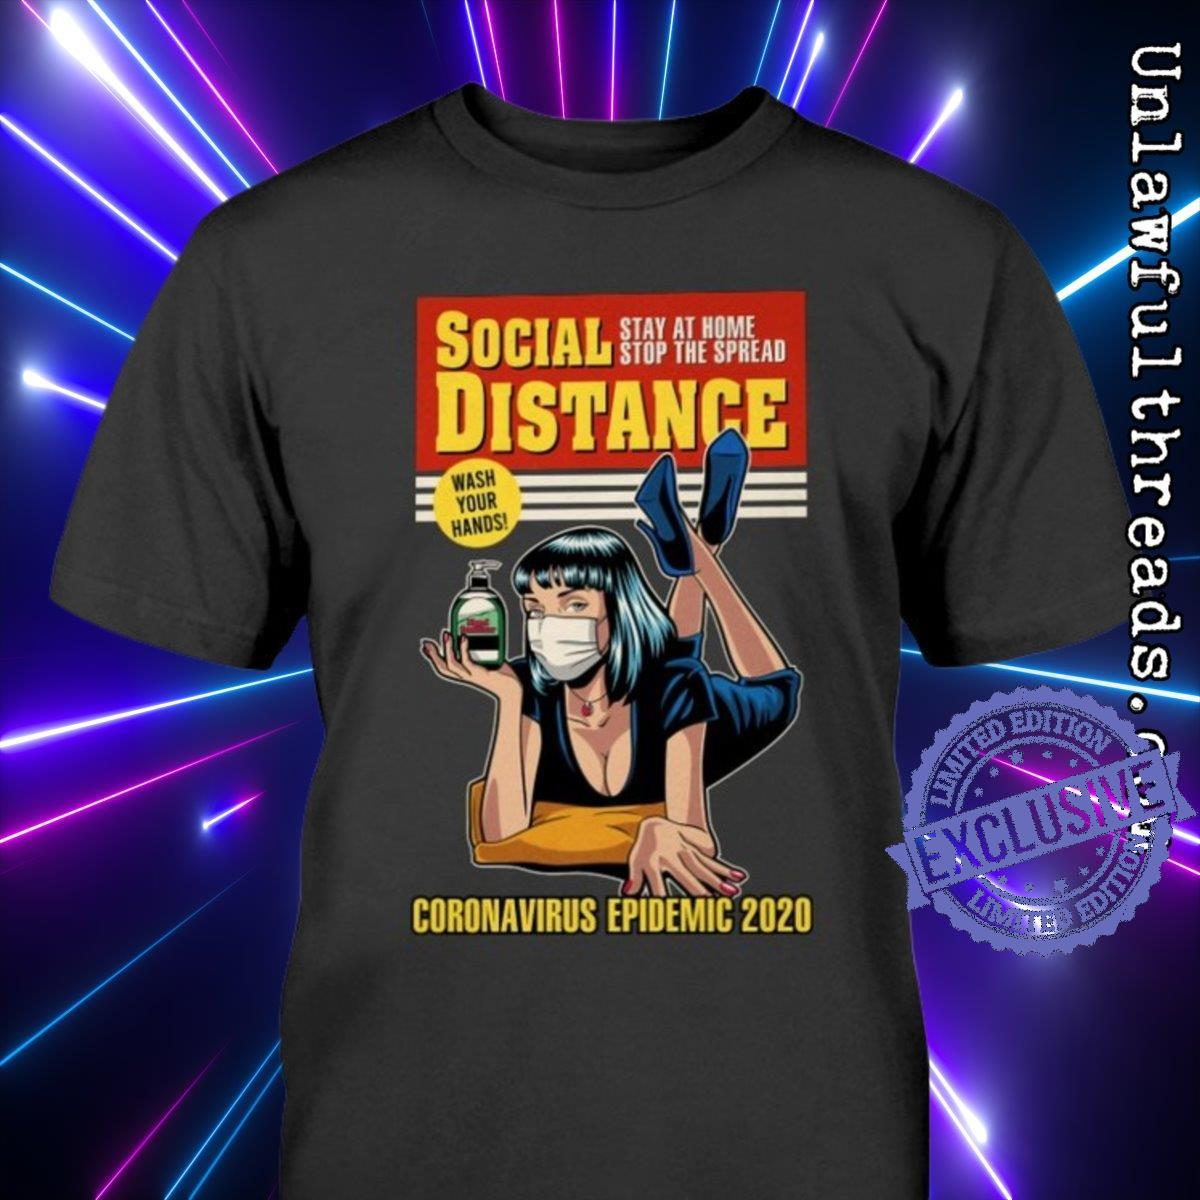 Social distance stay at home stop the spread coronavirus epidemic 2020 shirt